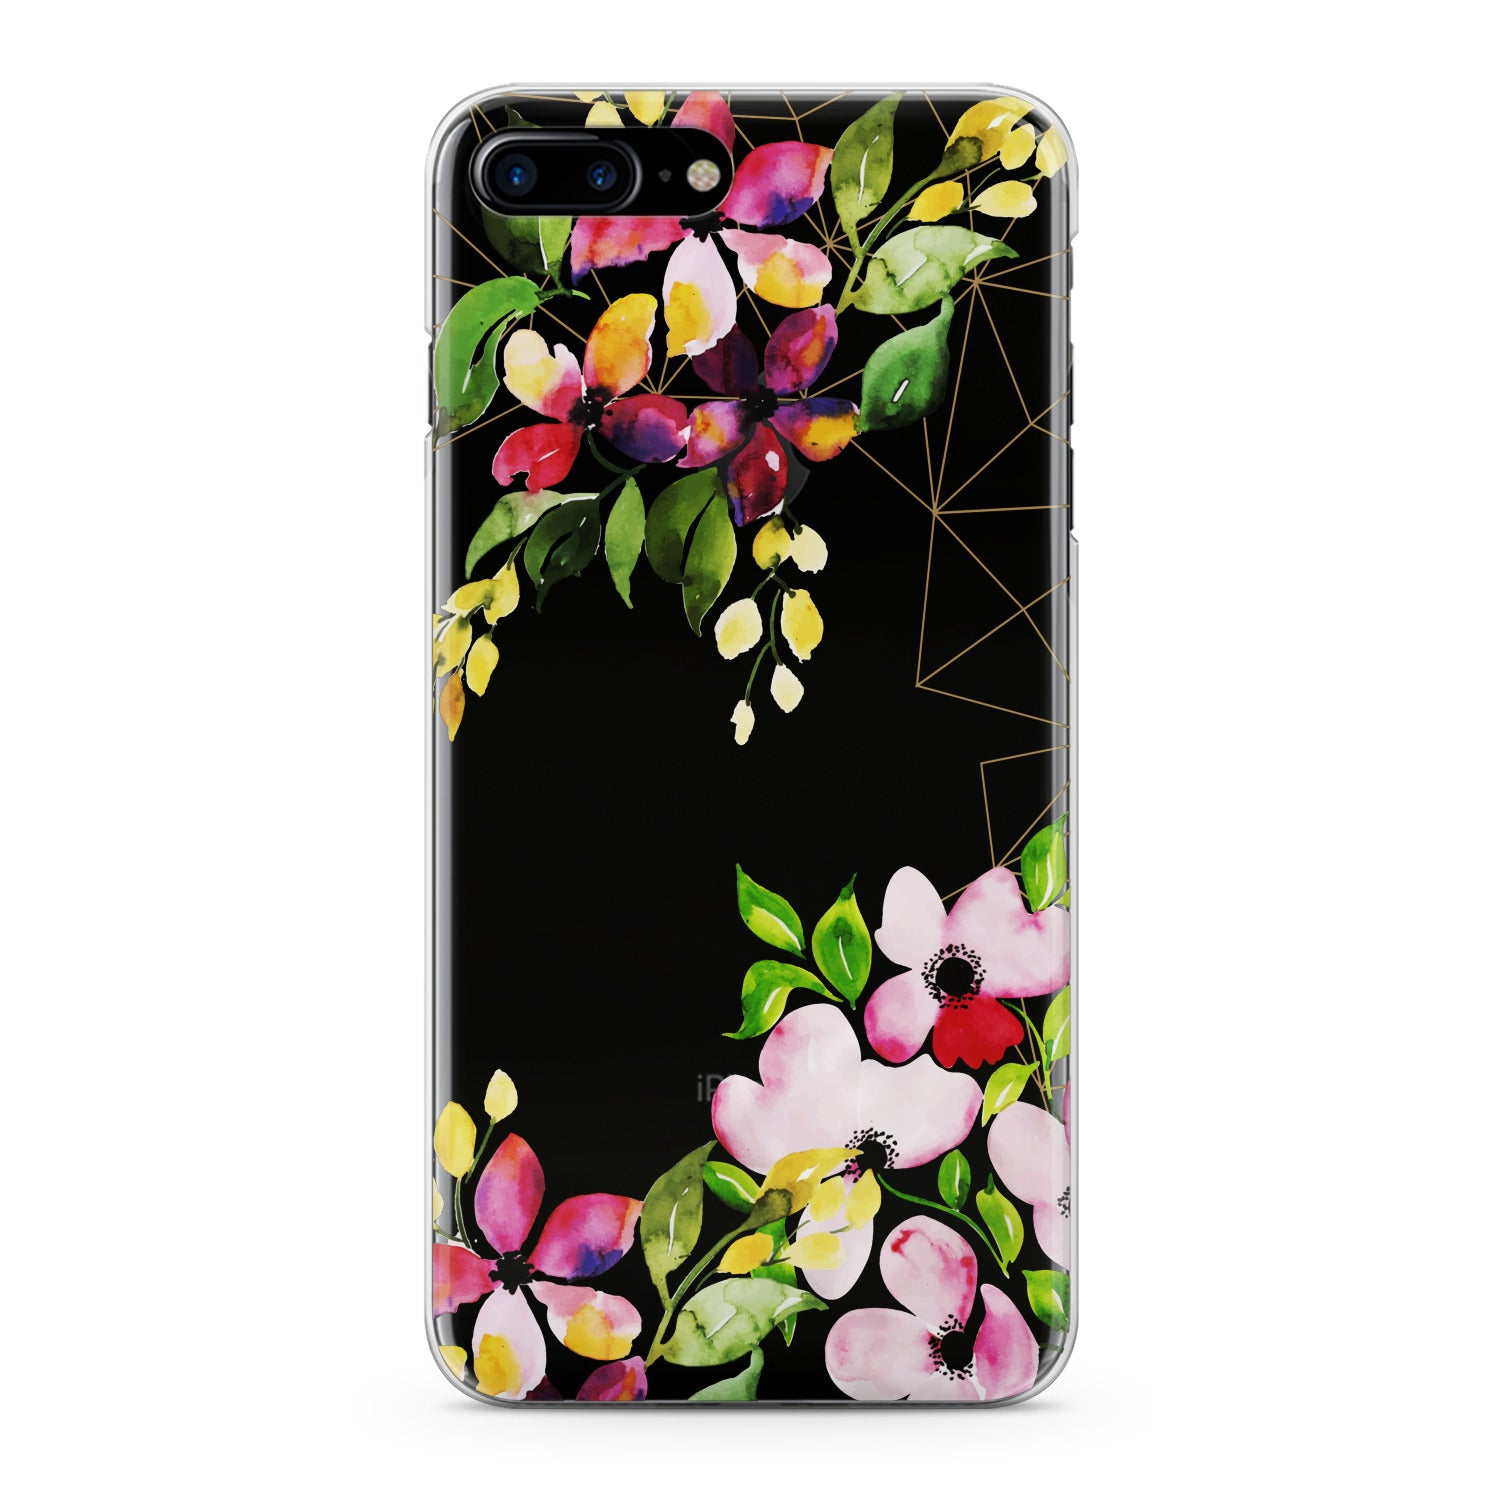 Lex Altern Spring Flowers Print Phone Case for your iPhone & Android phone.